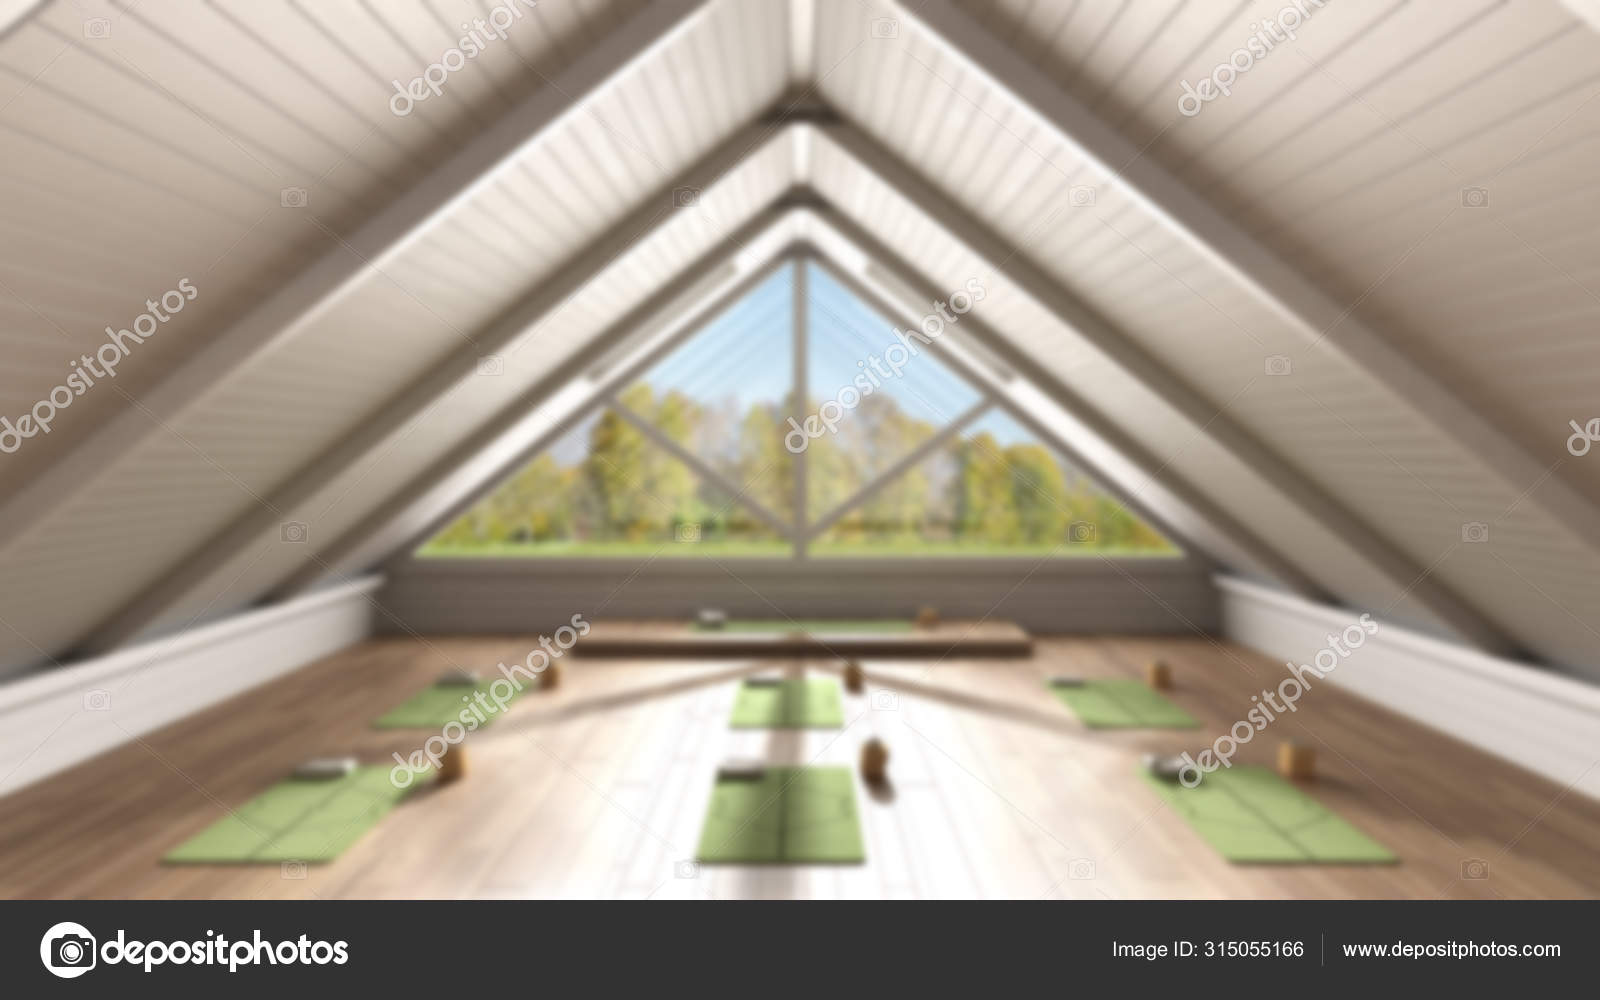 Blur Background Interior Design Unfinished Project That Becomes Real Empty Yoga Studio Architecture Spatial Organization With Mats And Accessories Panoramic Window Concept Idea Stock Photo C Archiviz 315055166